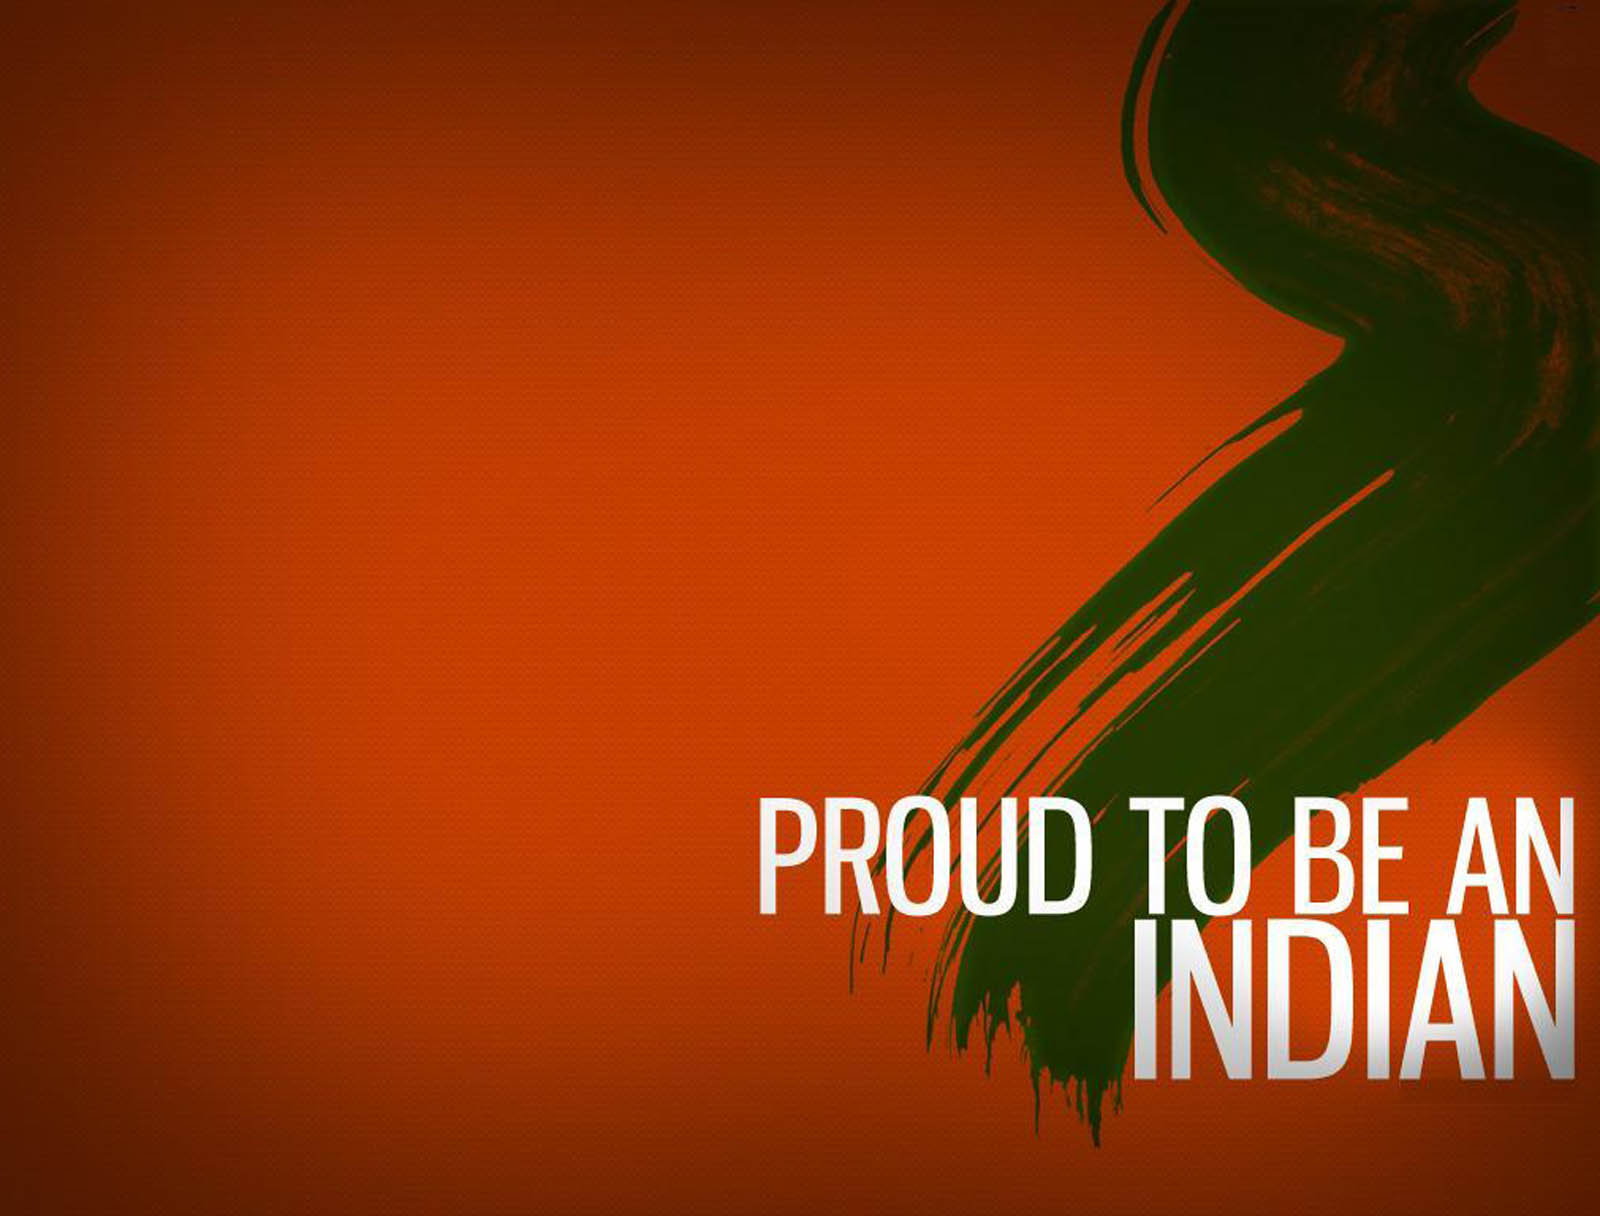 Essay On Why I Am Proud To Be An Indian